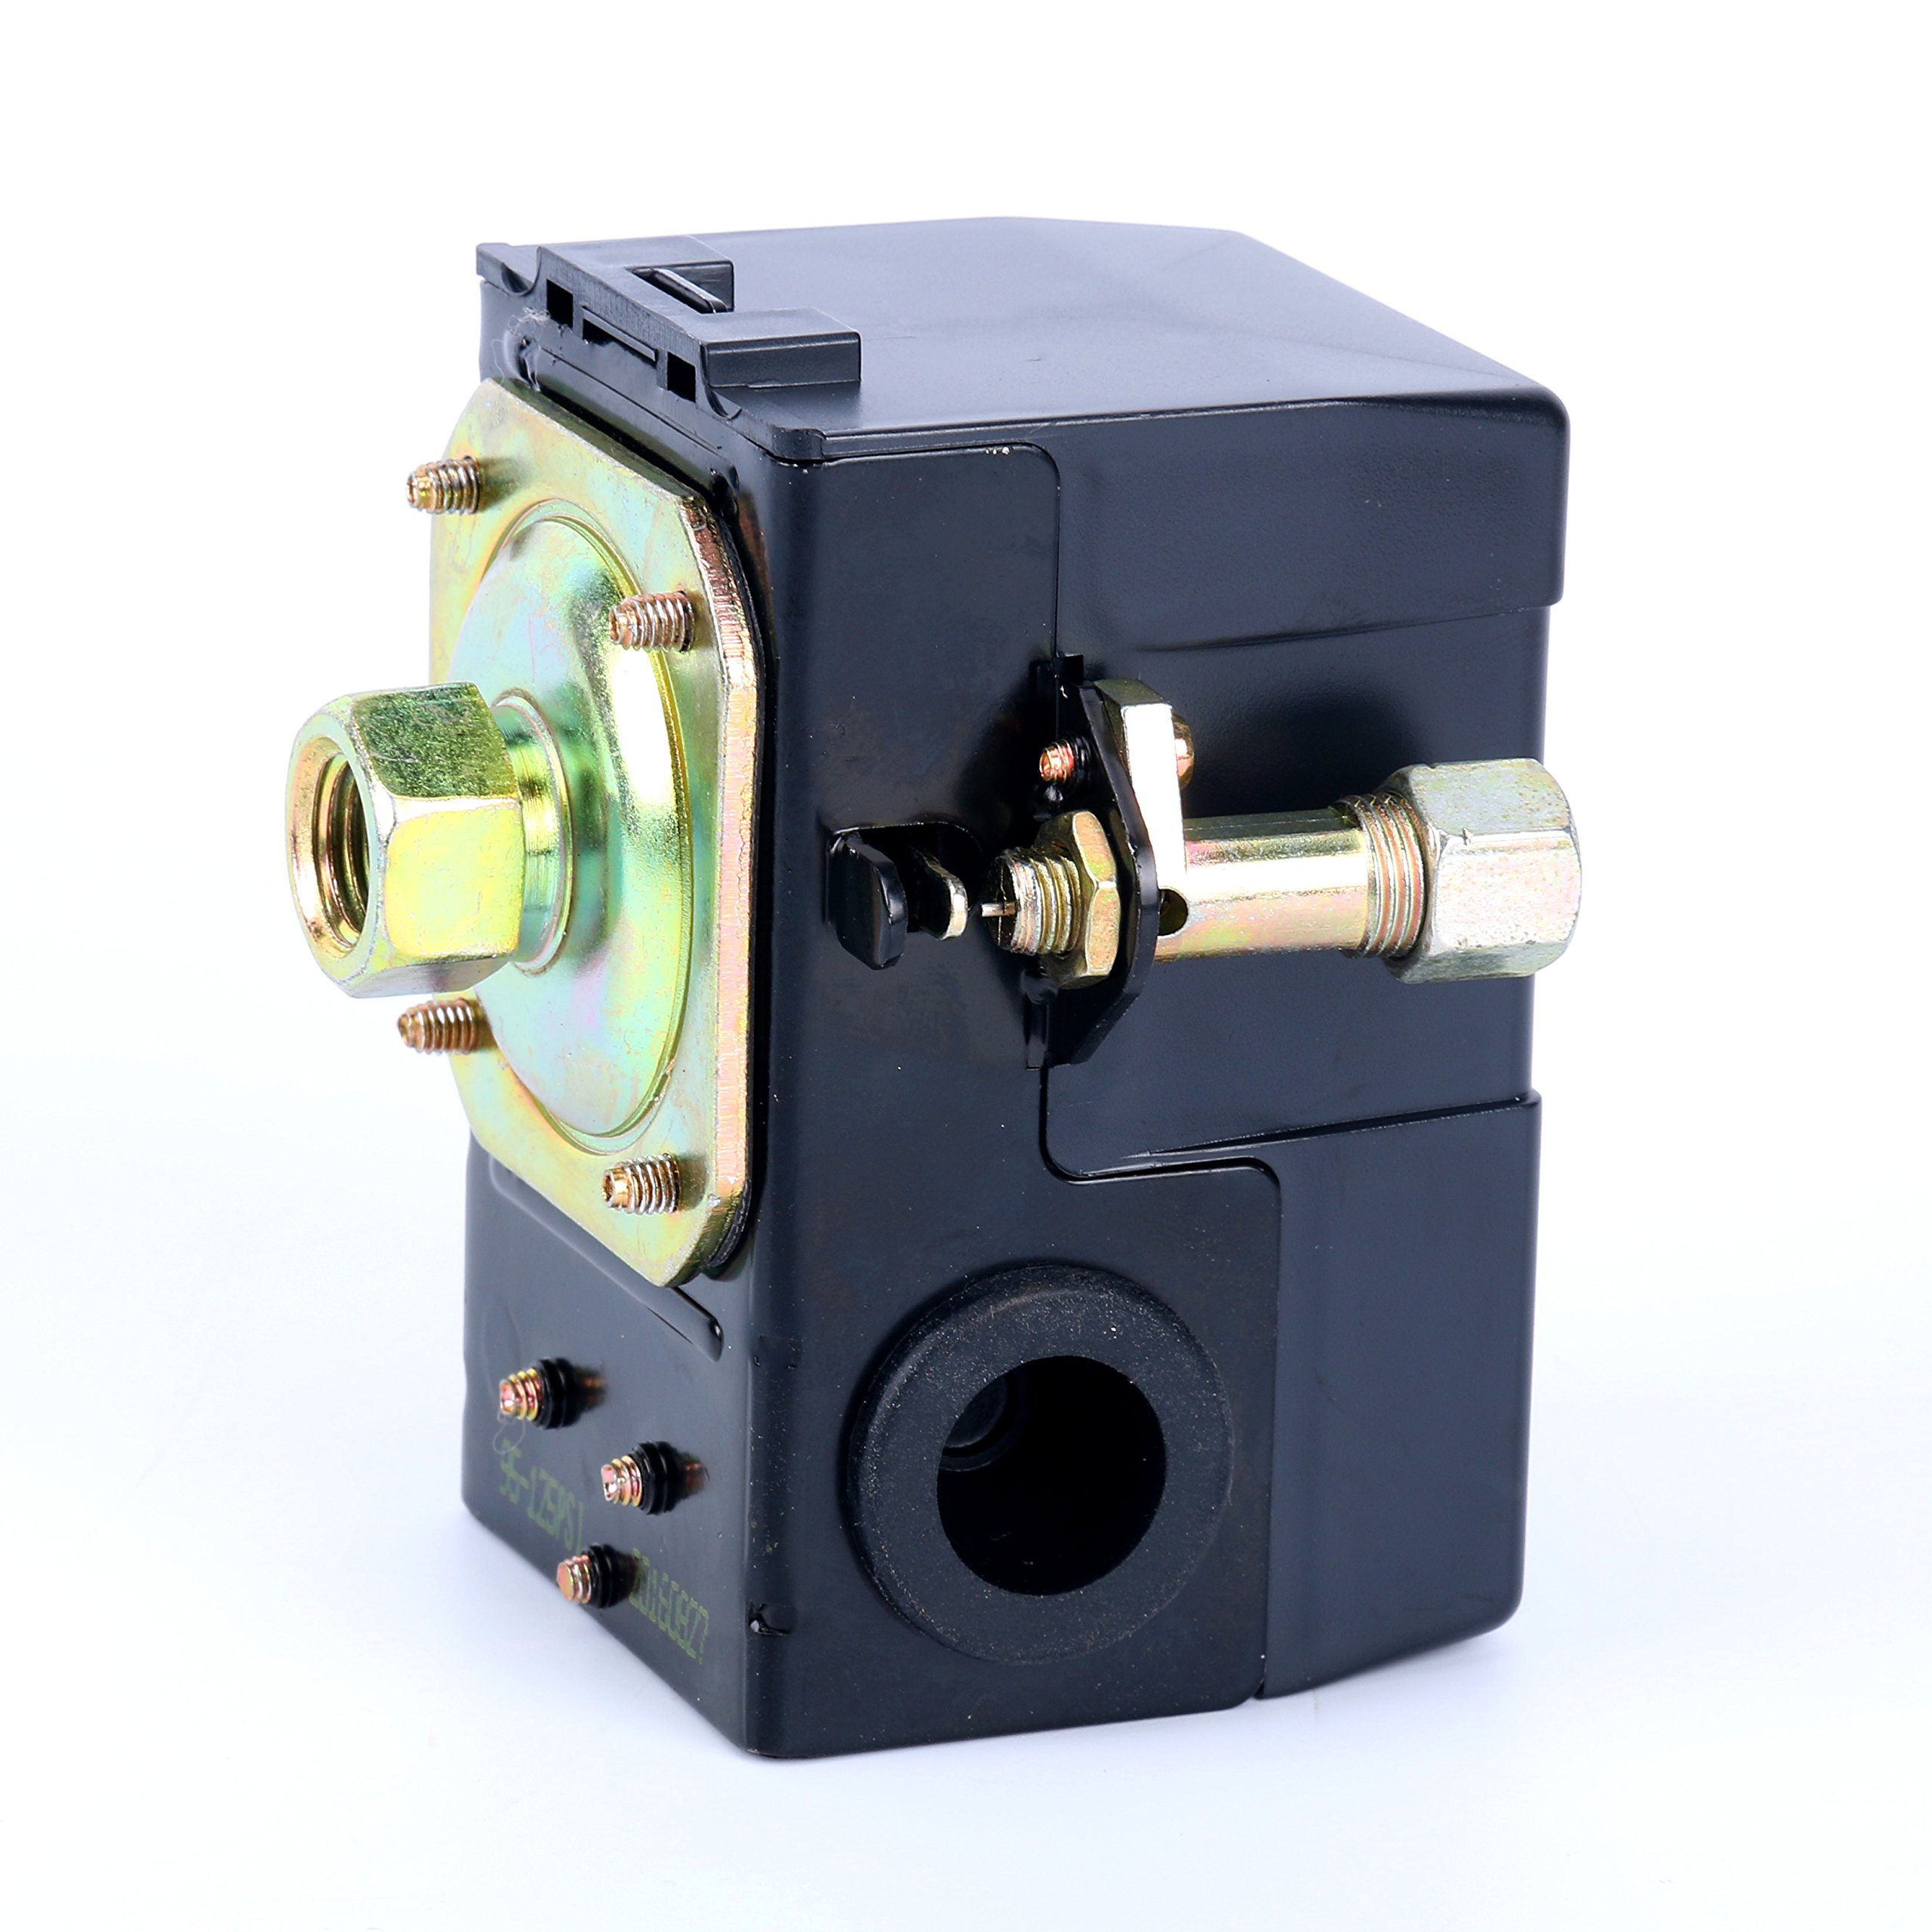 Lefoo Quality Air Compressor Pressure Switch Control Valve 95 125 For Diagram Psi W Unloader Lf10 1h 1 Npt1 4